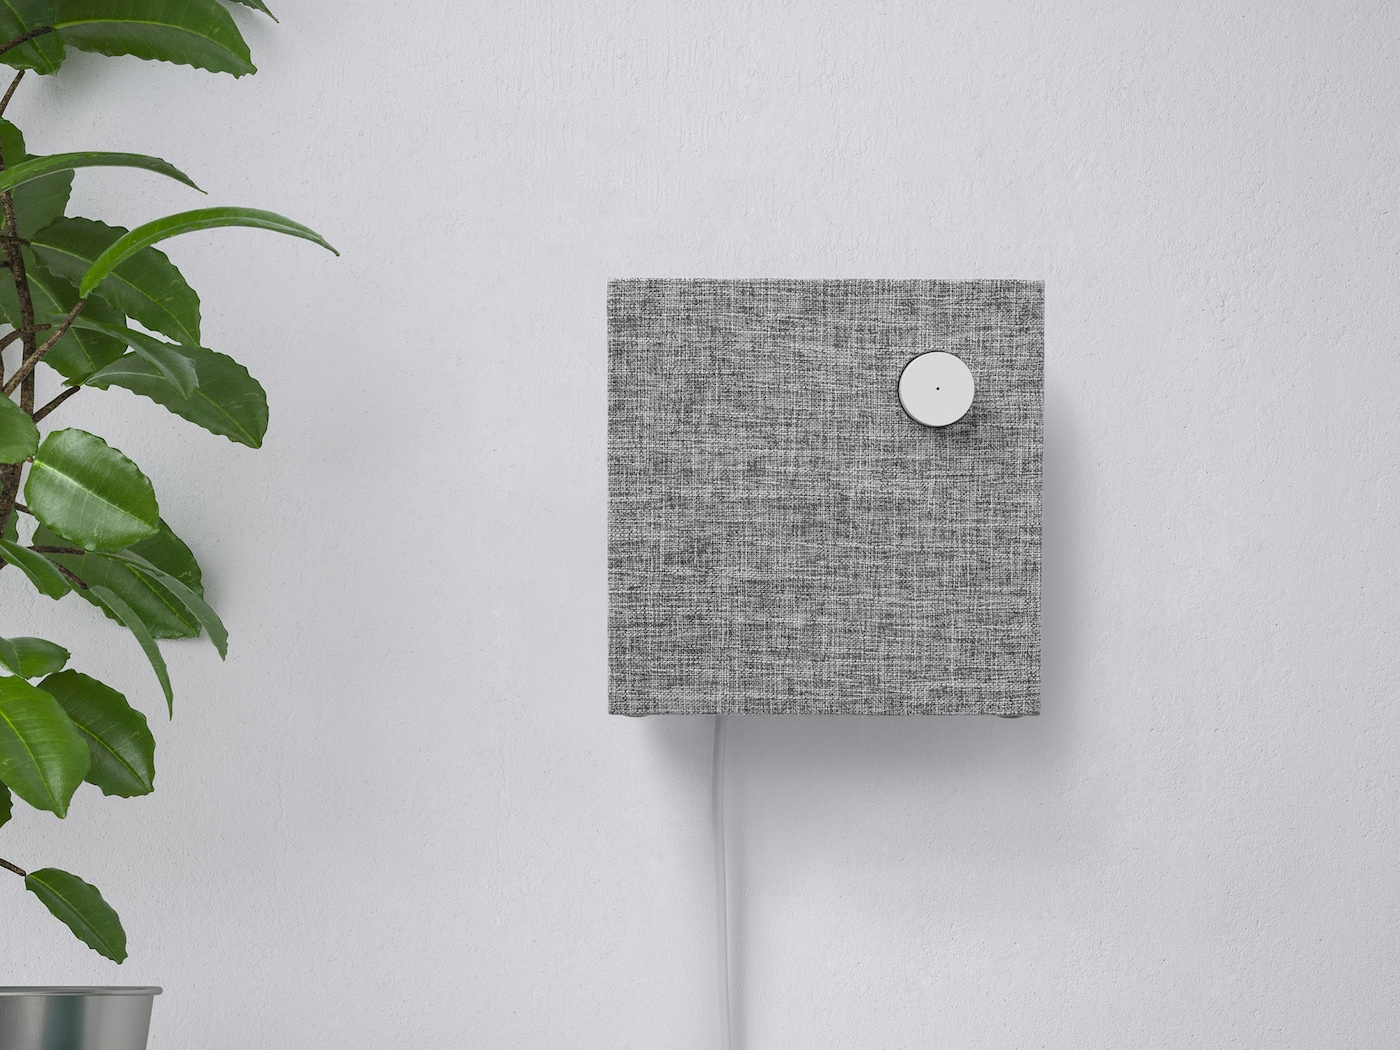 ENEBY Bluetooth speaker wall mounted on a white wall next to a green plant.